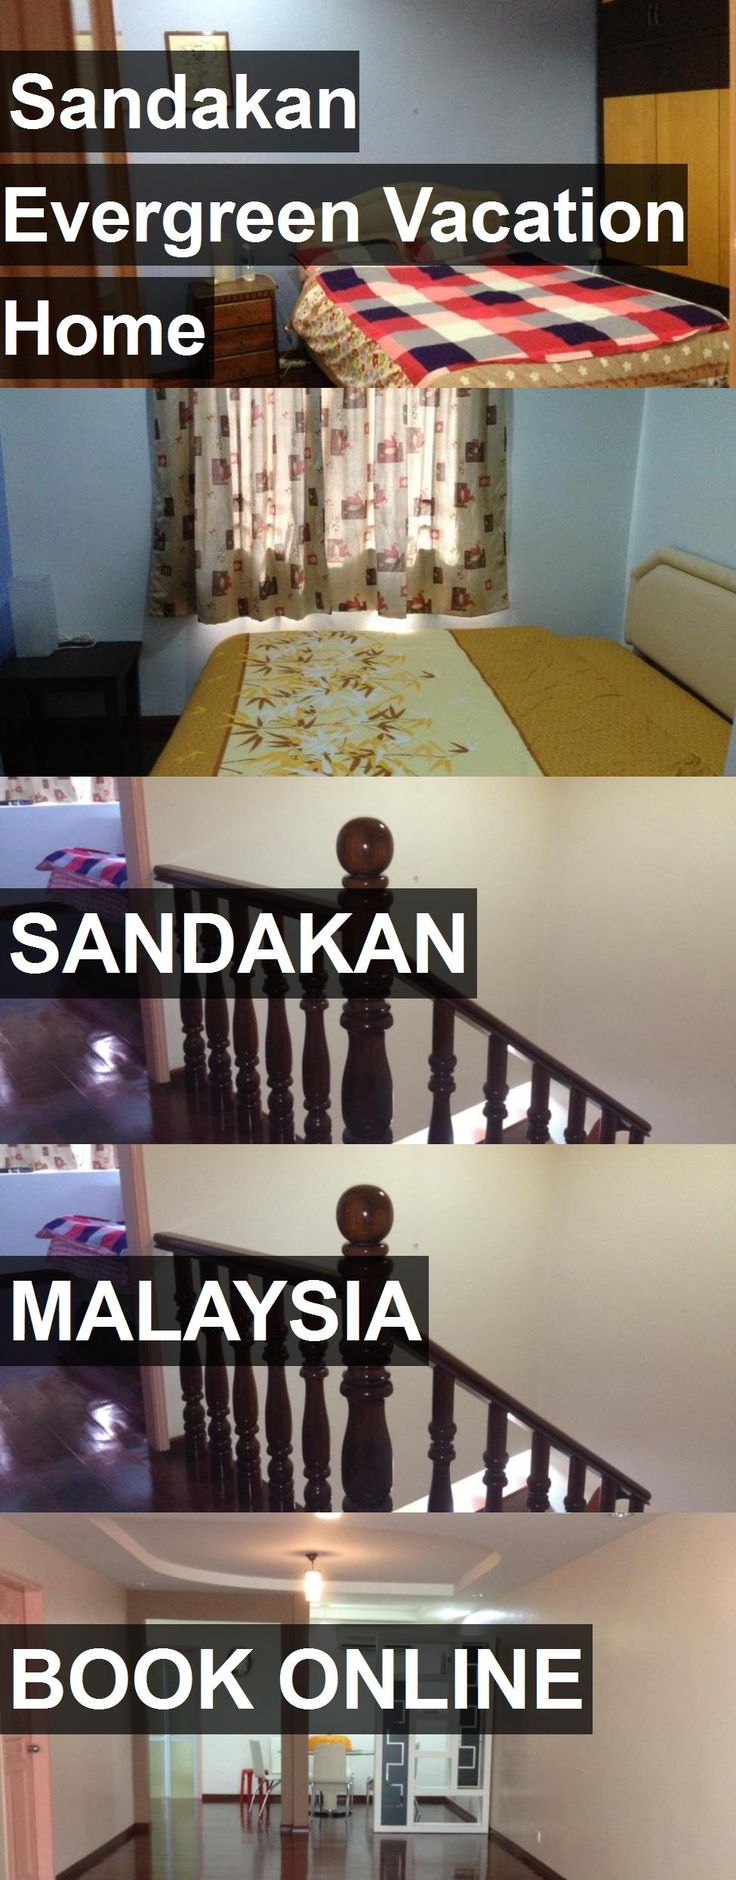 Hotel Sandakan Evergreen Vacation Home in Sandakan, Malaysia. For more information, photos, reviews and best prices please follow the link. #Malaysia #Sandakan #travel #vacation #hotel